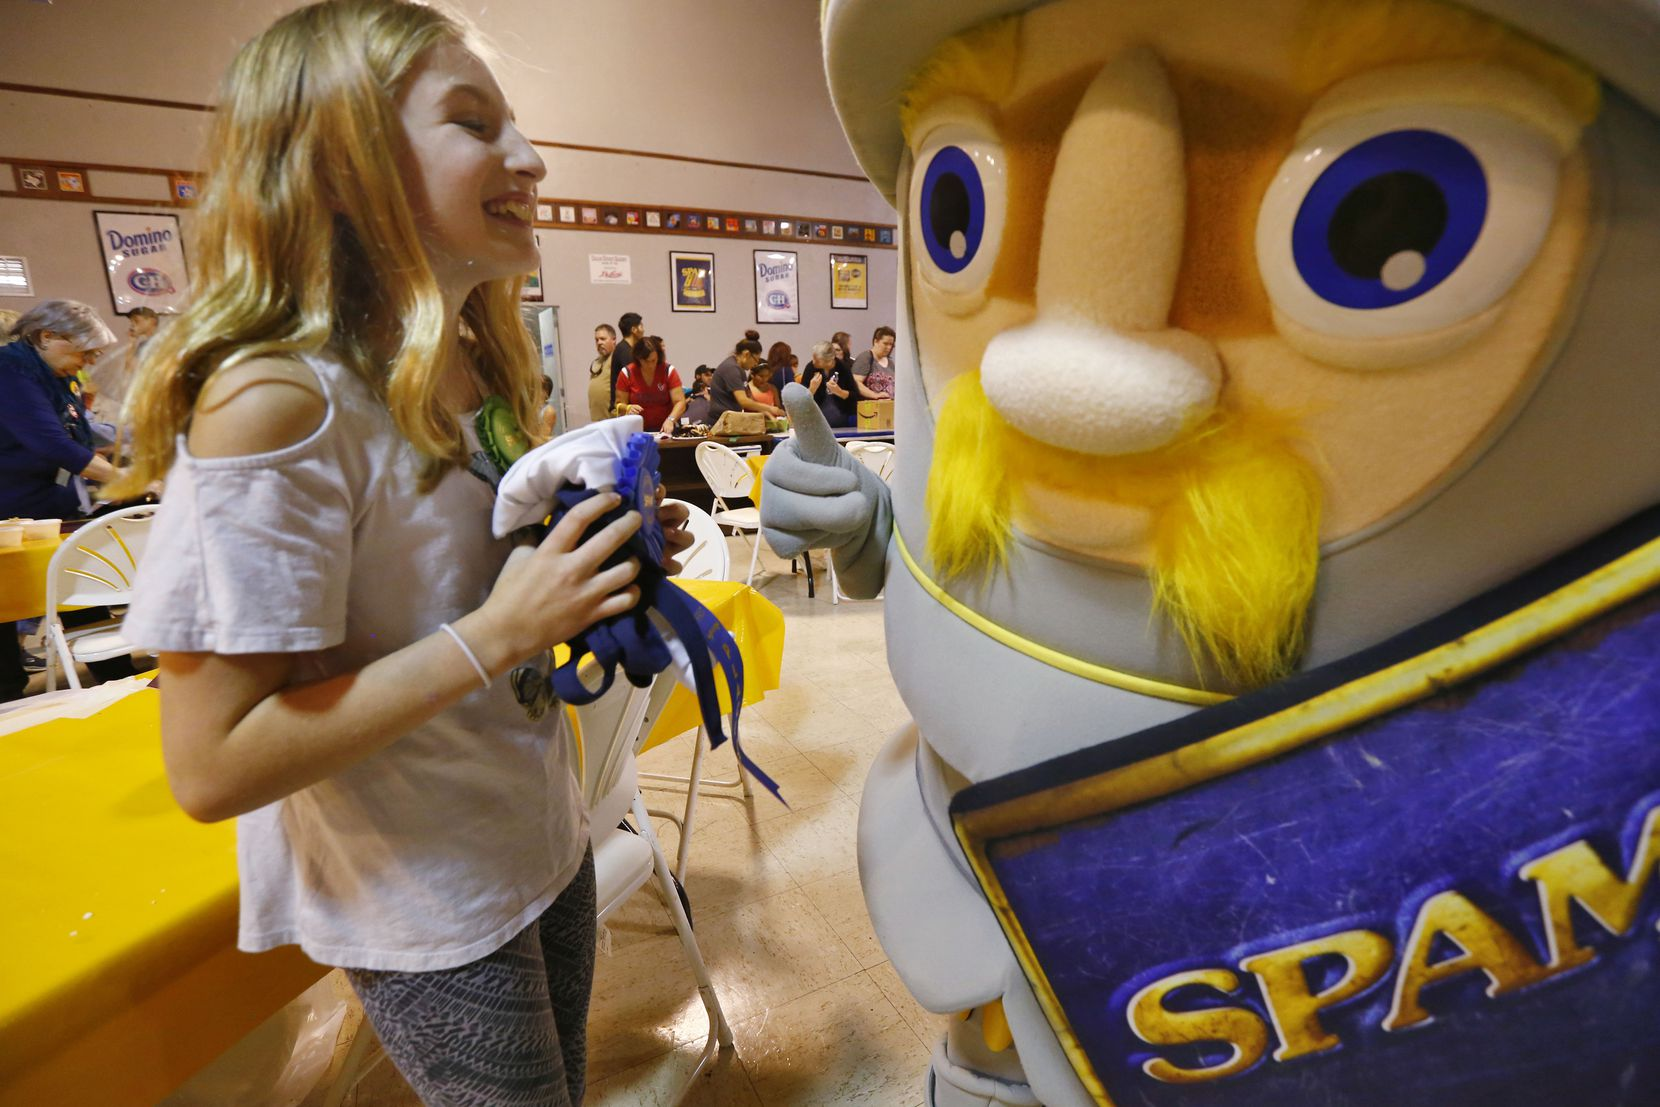 Allyson Garmon, 11, laughs with the Spam mascot, Sir Can-A-Lot, after winning the Kid Chef Spam cooking contest.